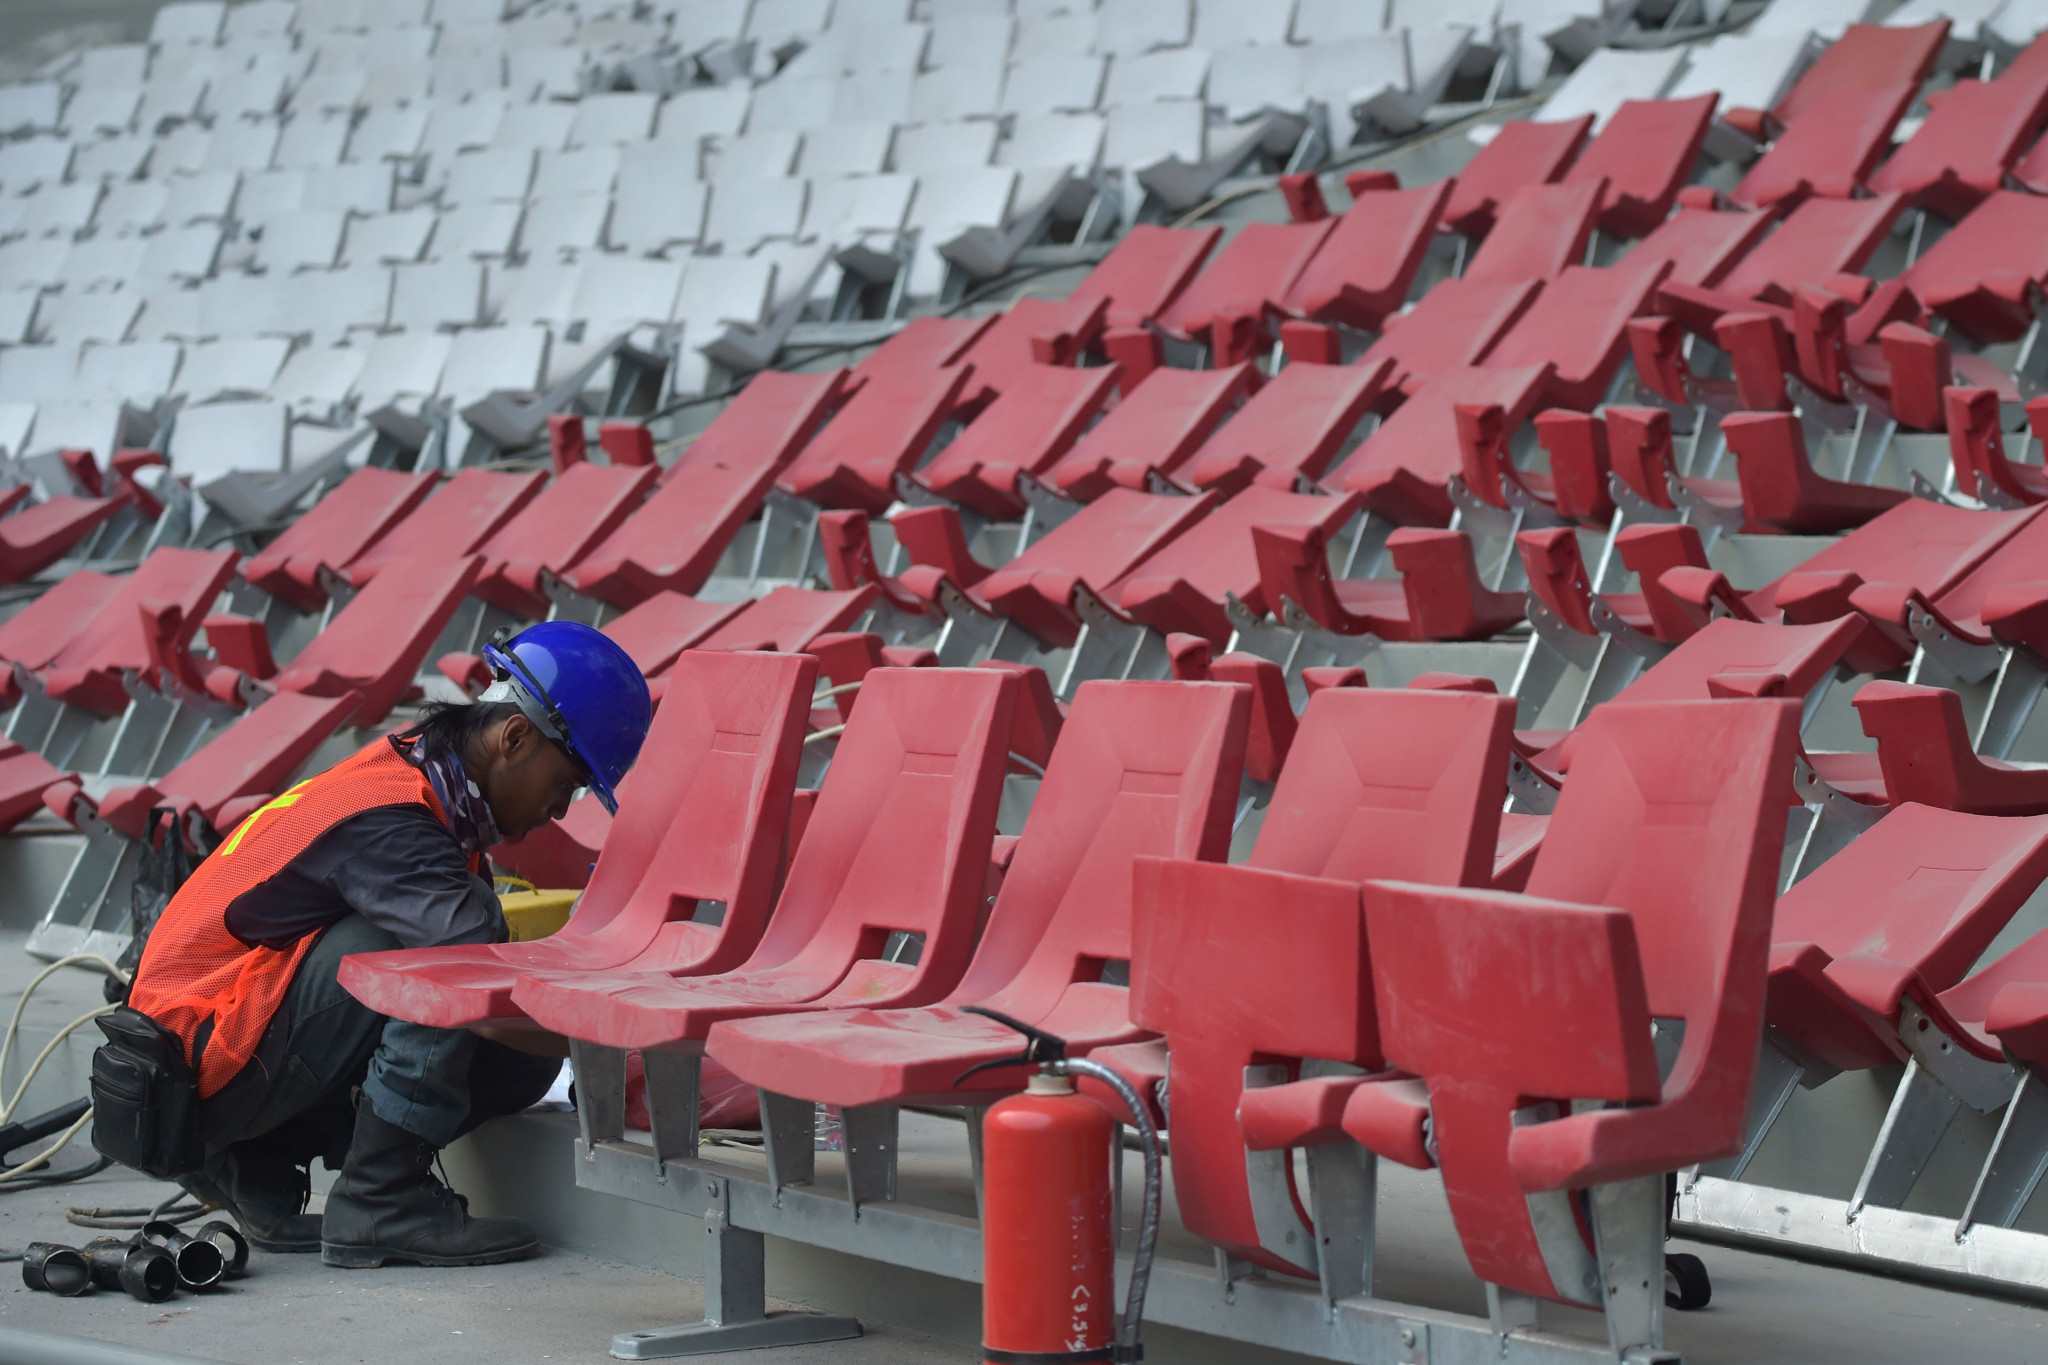 Renovation work included installing seats to replace benches ©Getty Images